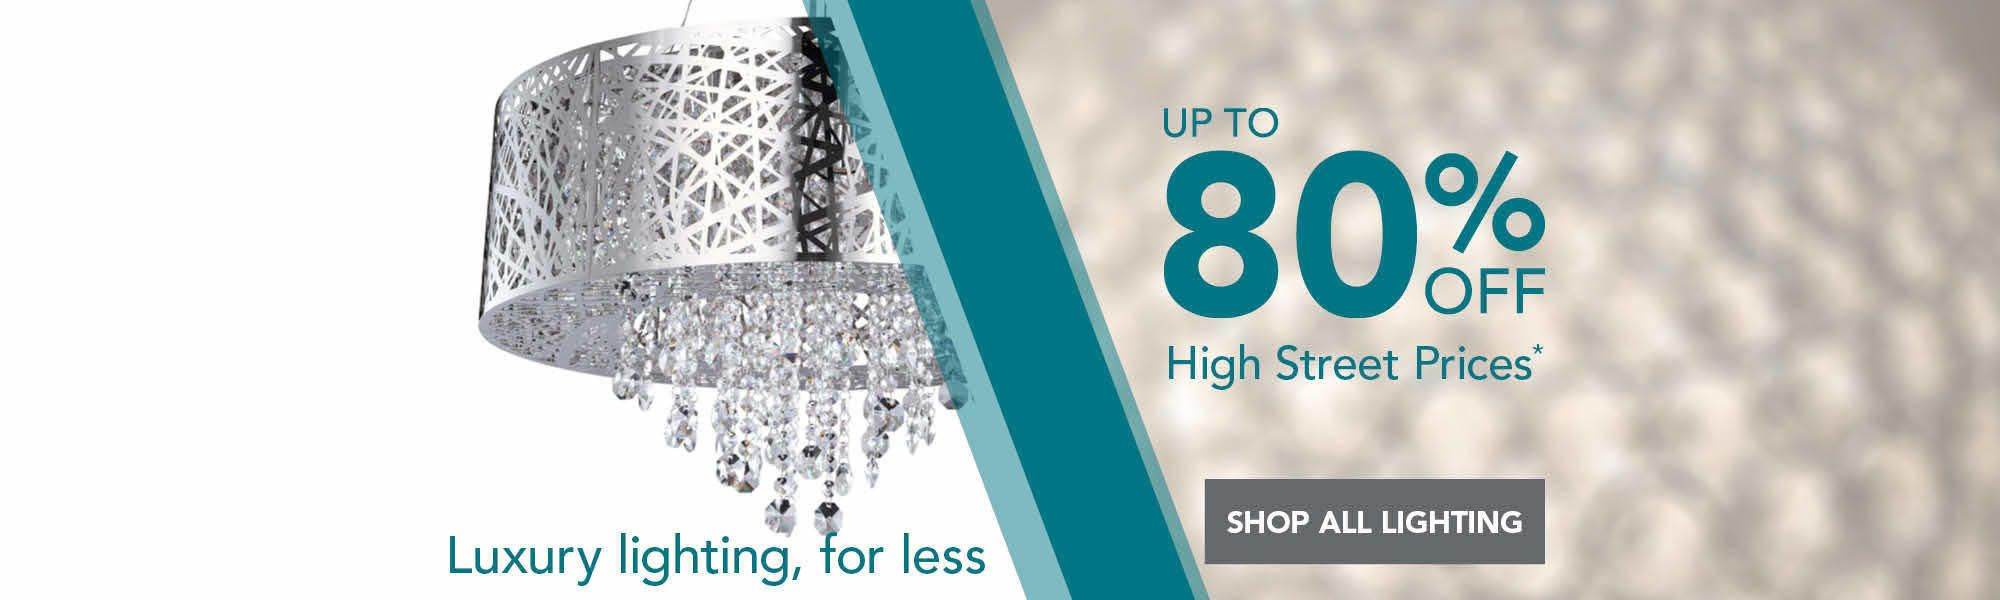 Save Up To 80% off High Street Prices!